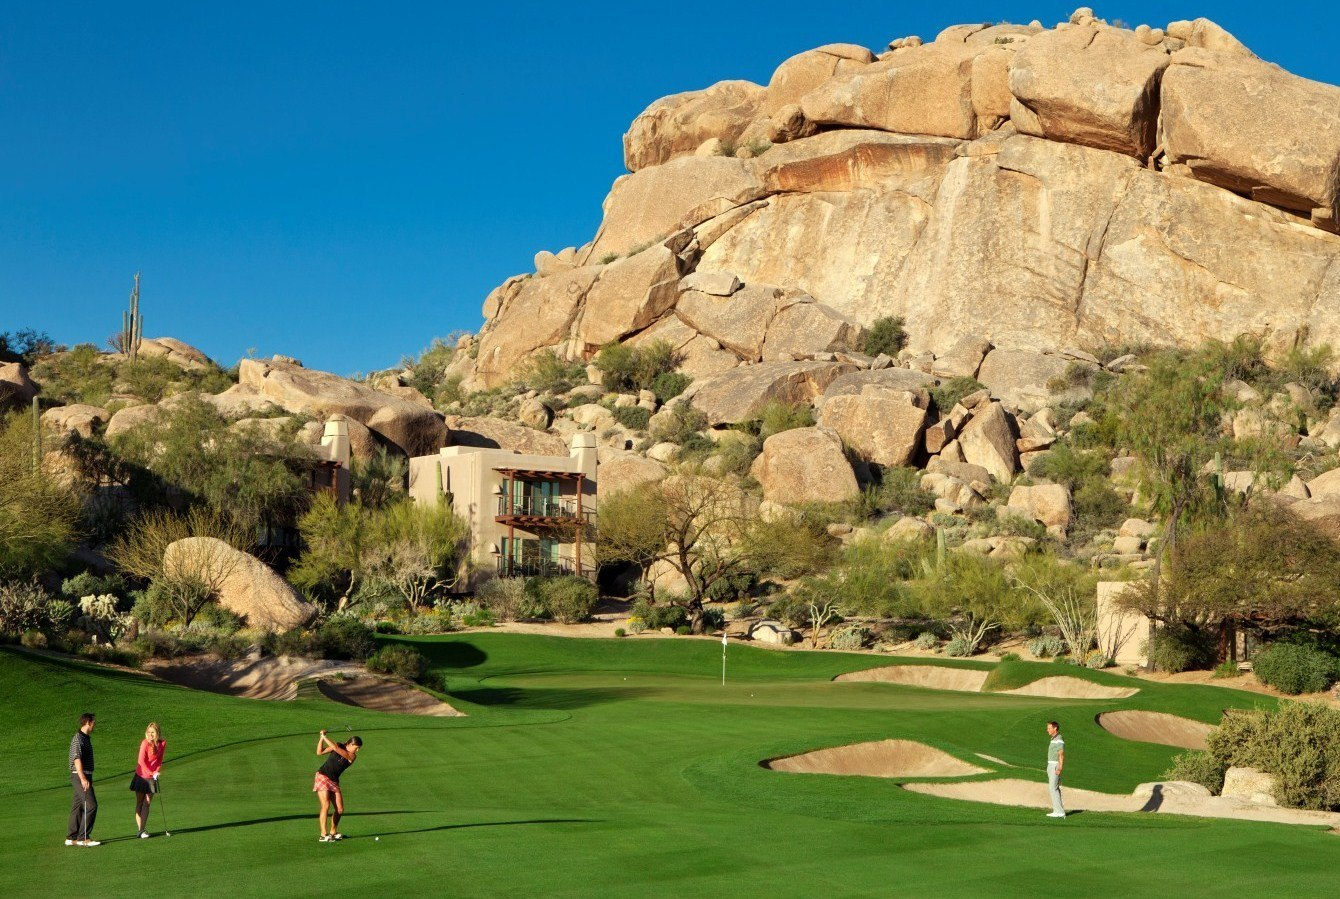 stackliving-most-beautiful-hotels-02-The-Boulder-Arizona-02